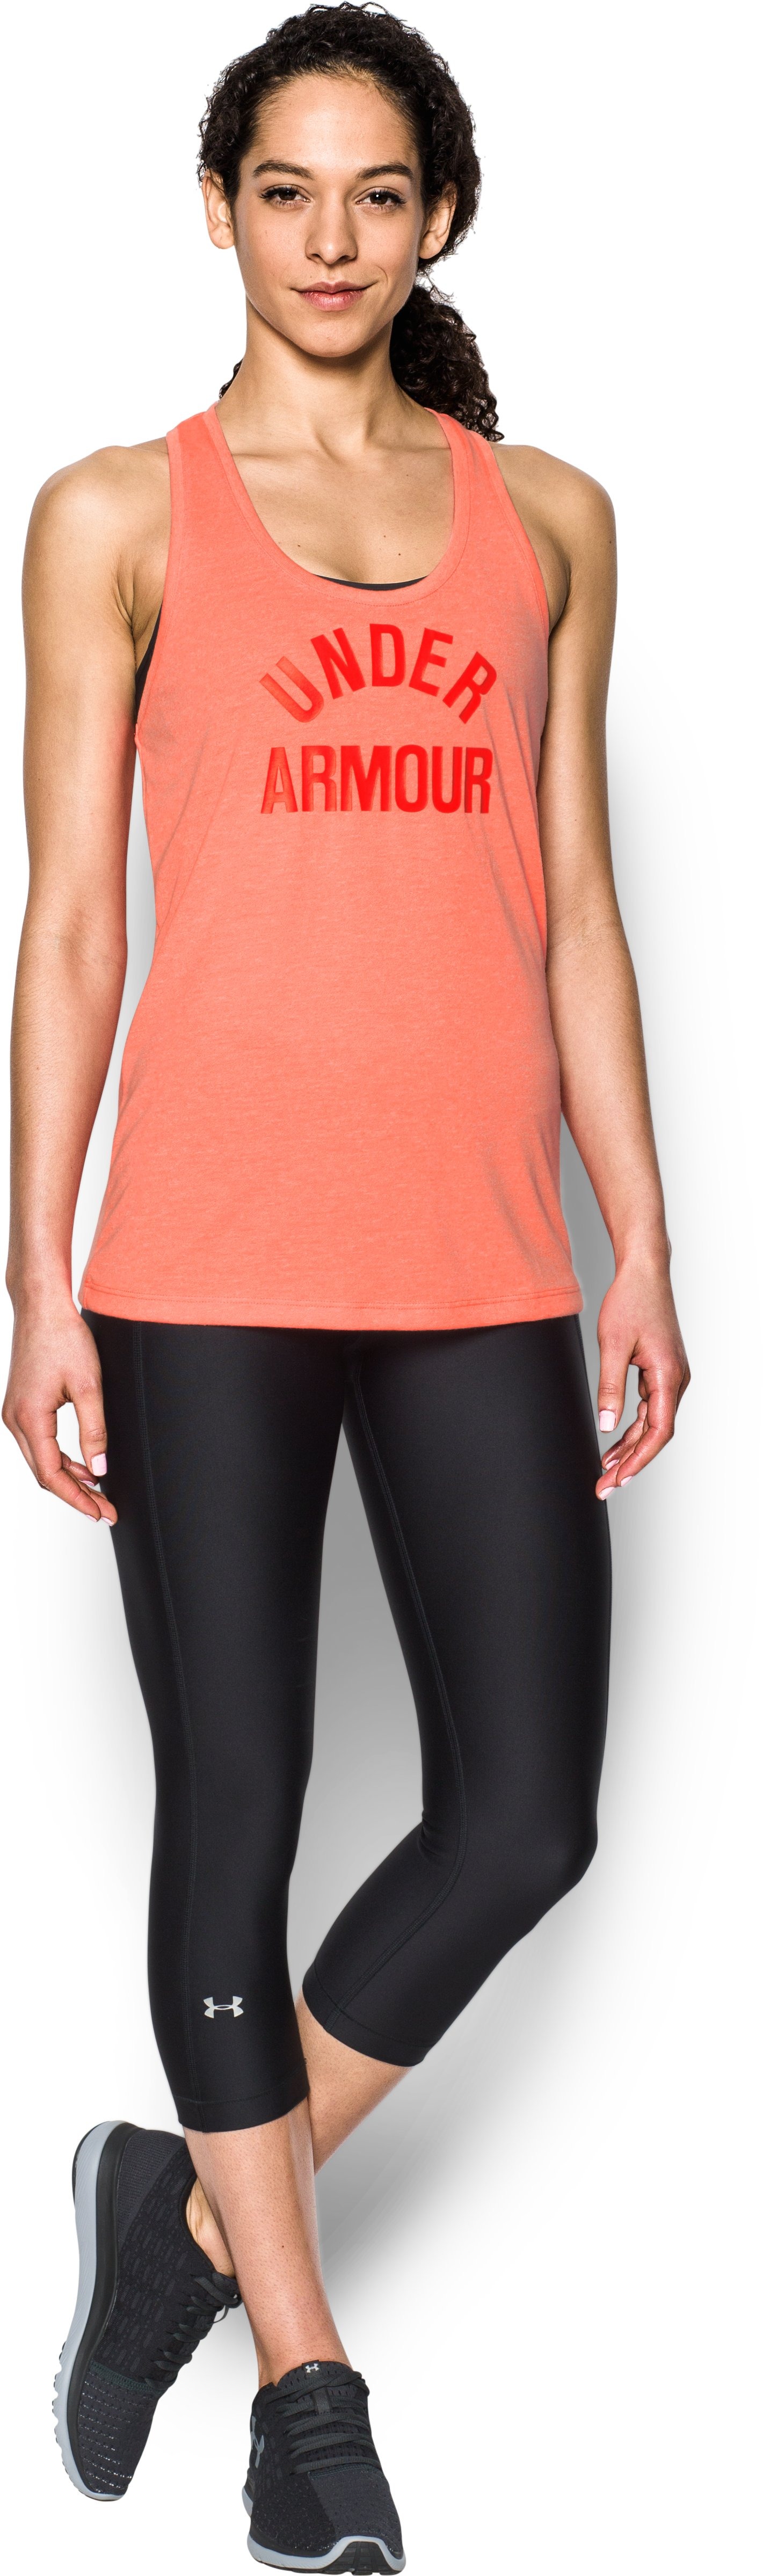 Women's UA Threadborne Train Wordmark Tank -Twist, LONDON ORANGE